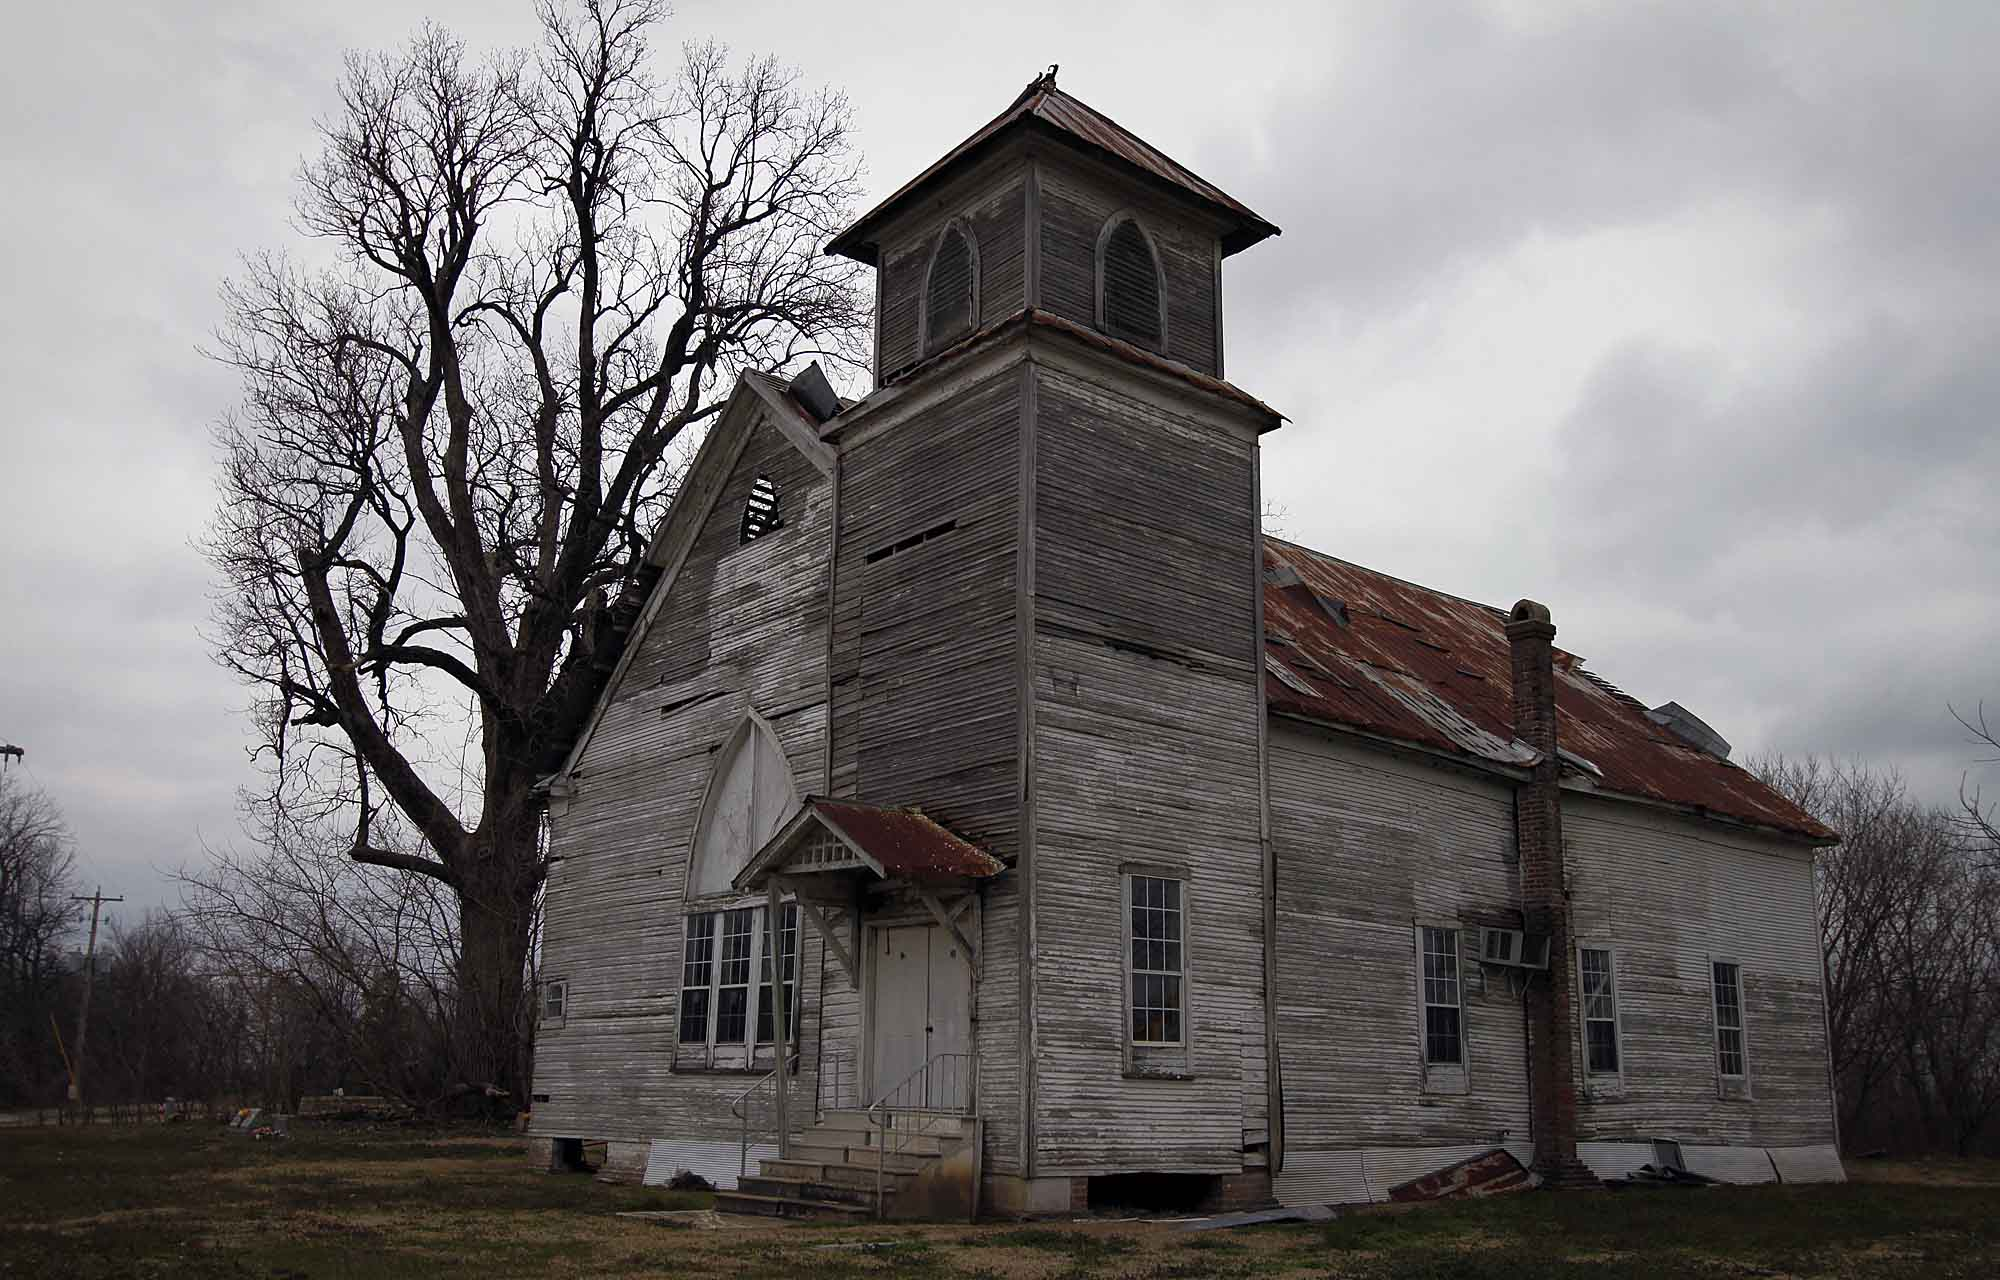 Rural church in MIssissippi Delta